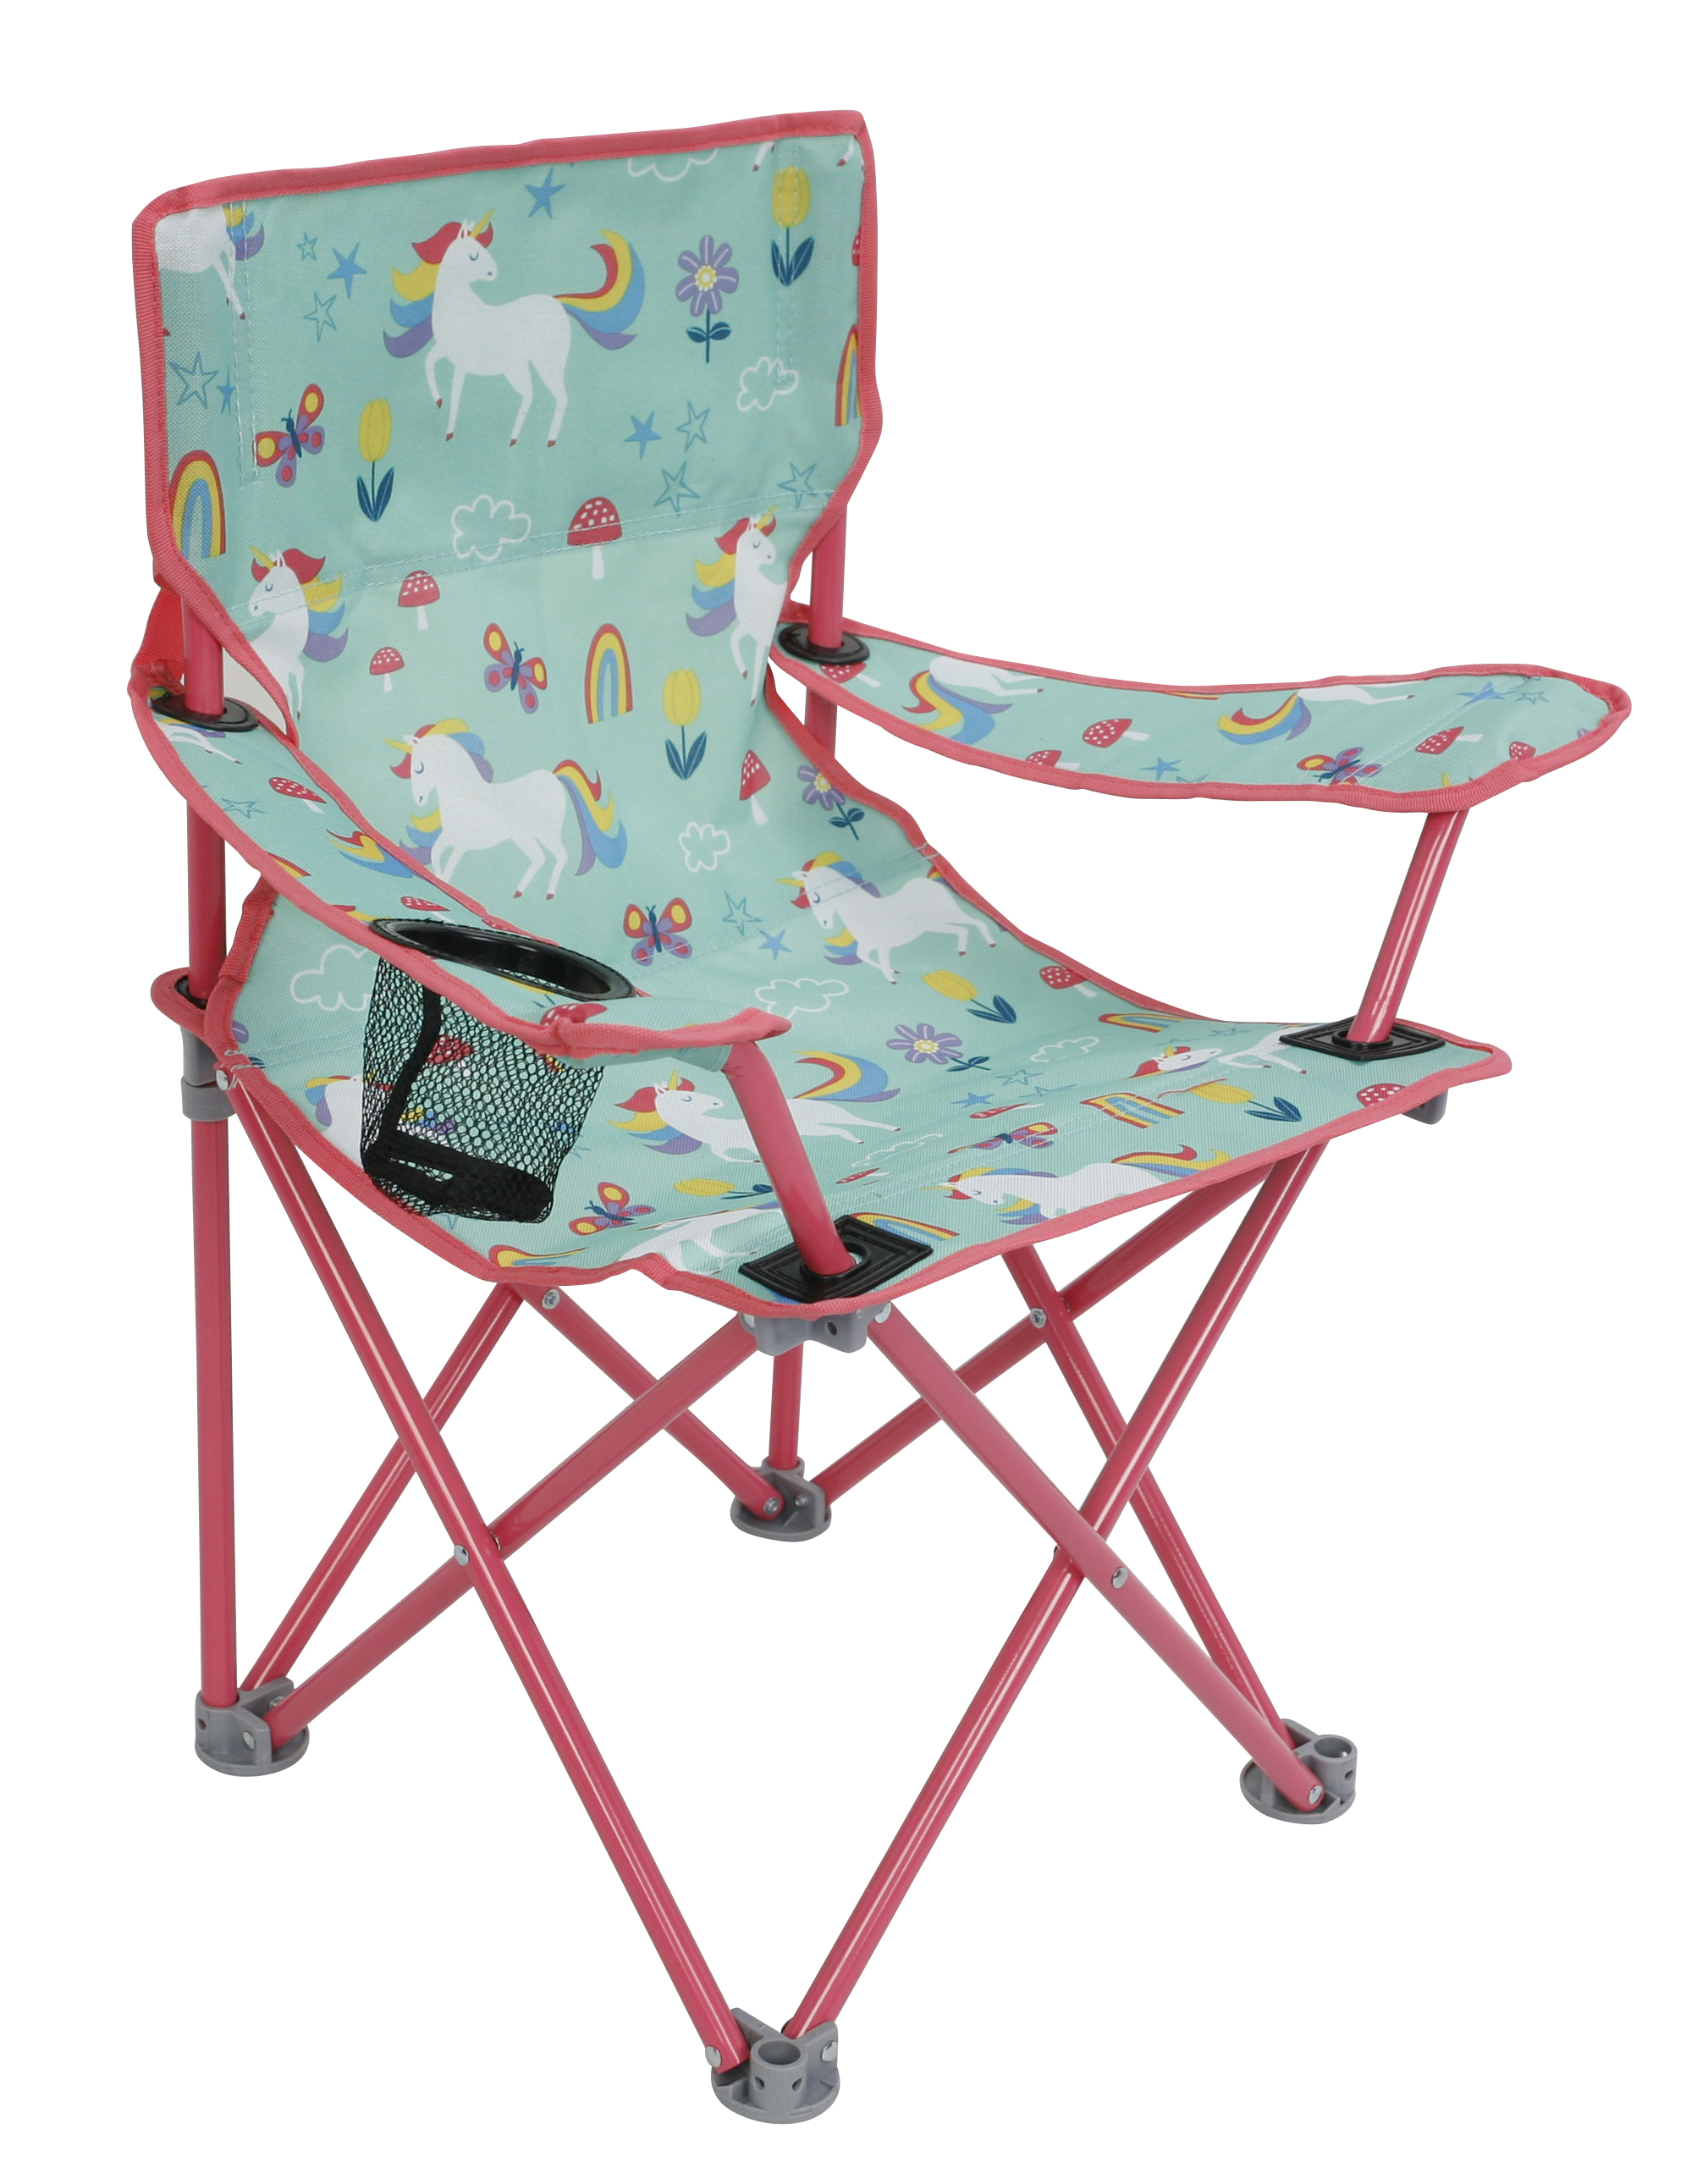 crckt kids folding camp chair with safety lock 125lb capacity unicorn print